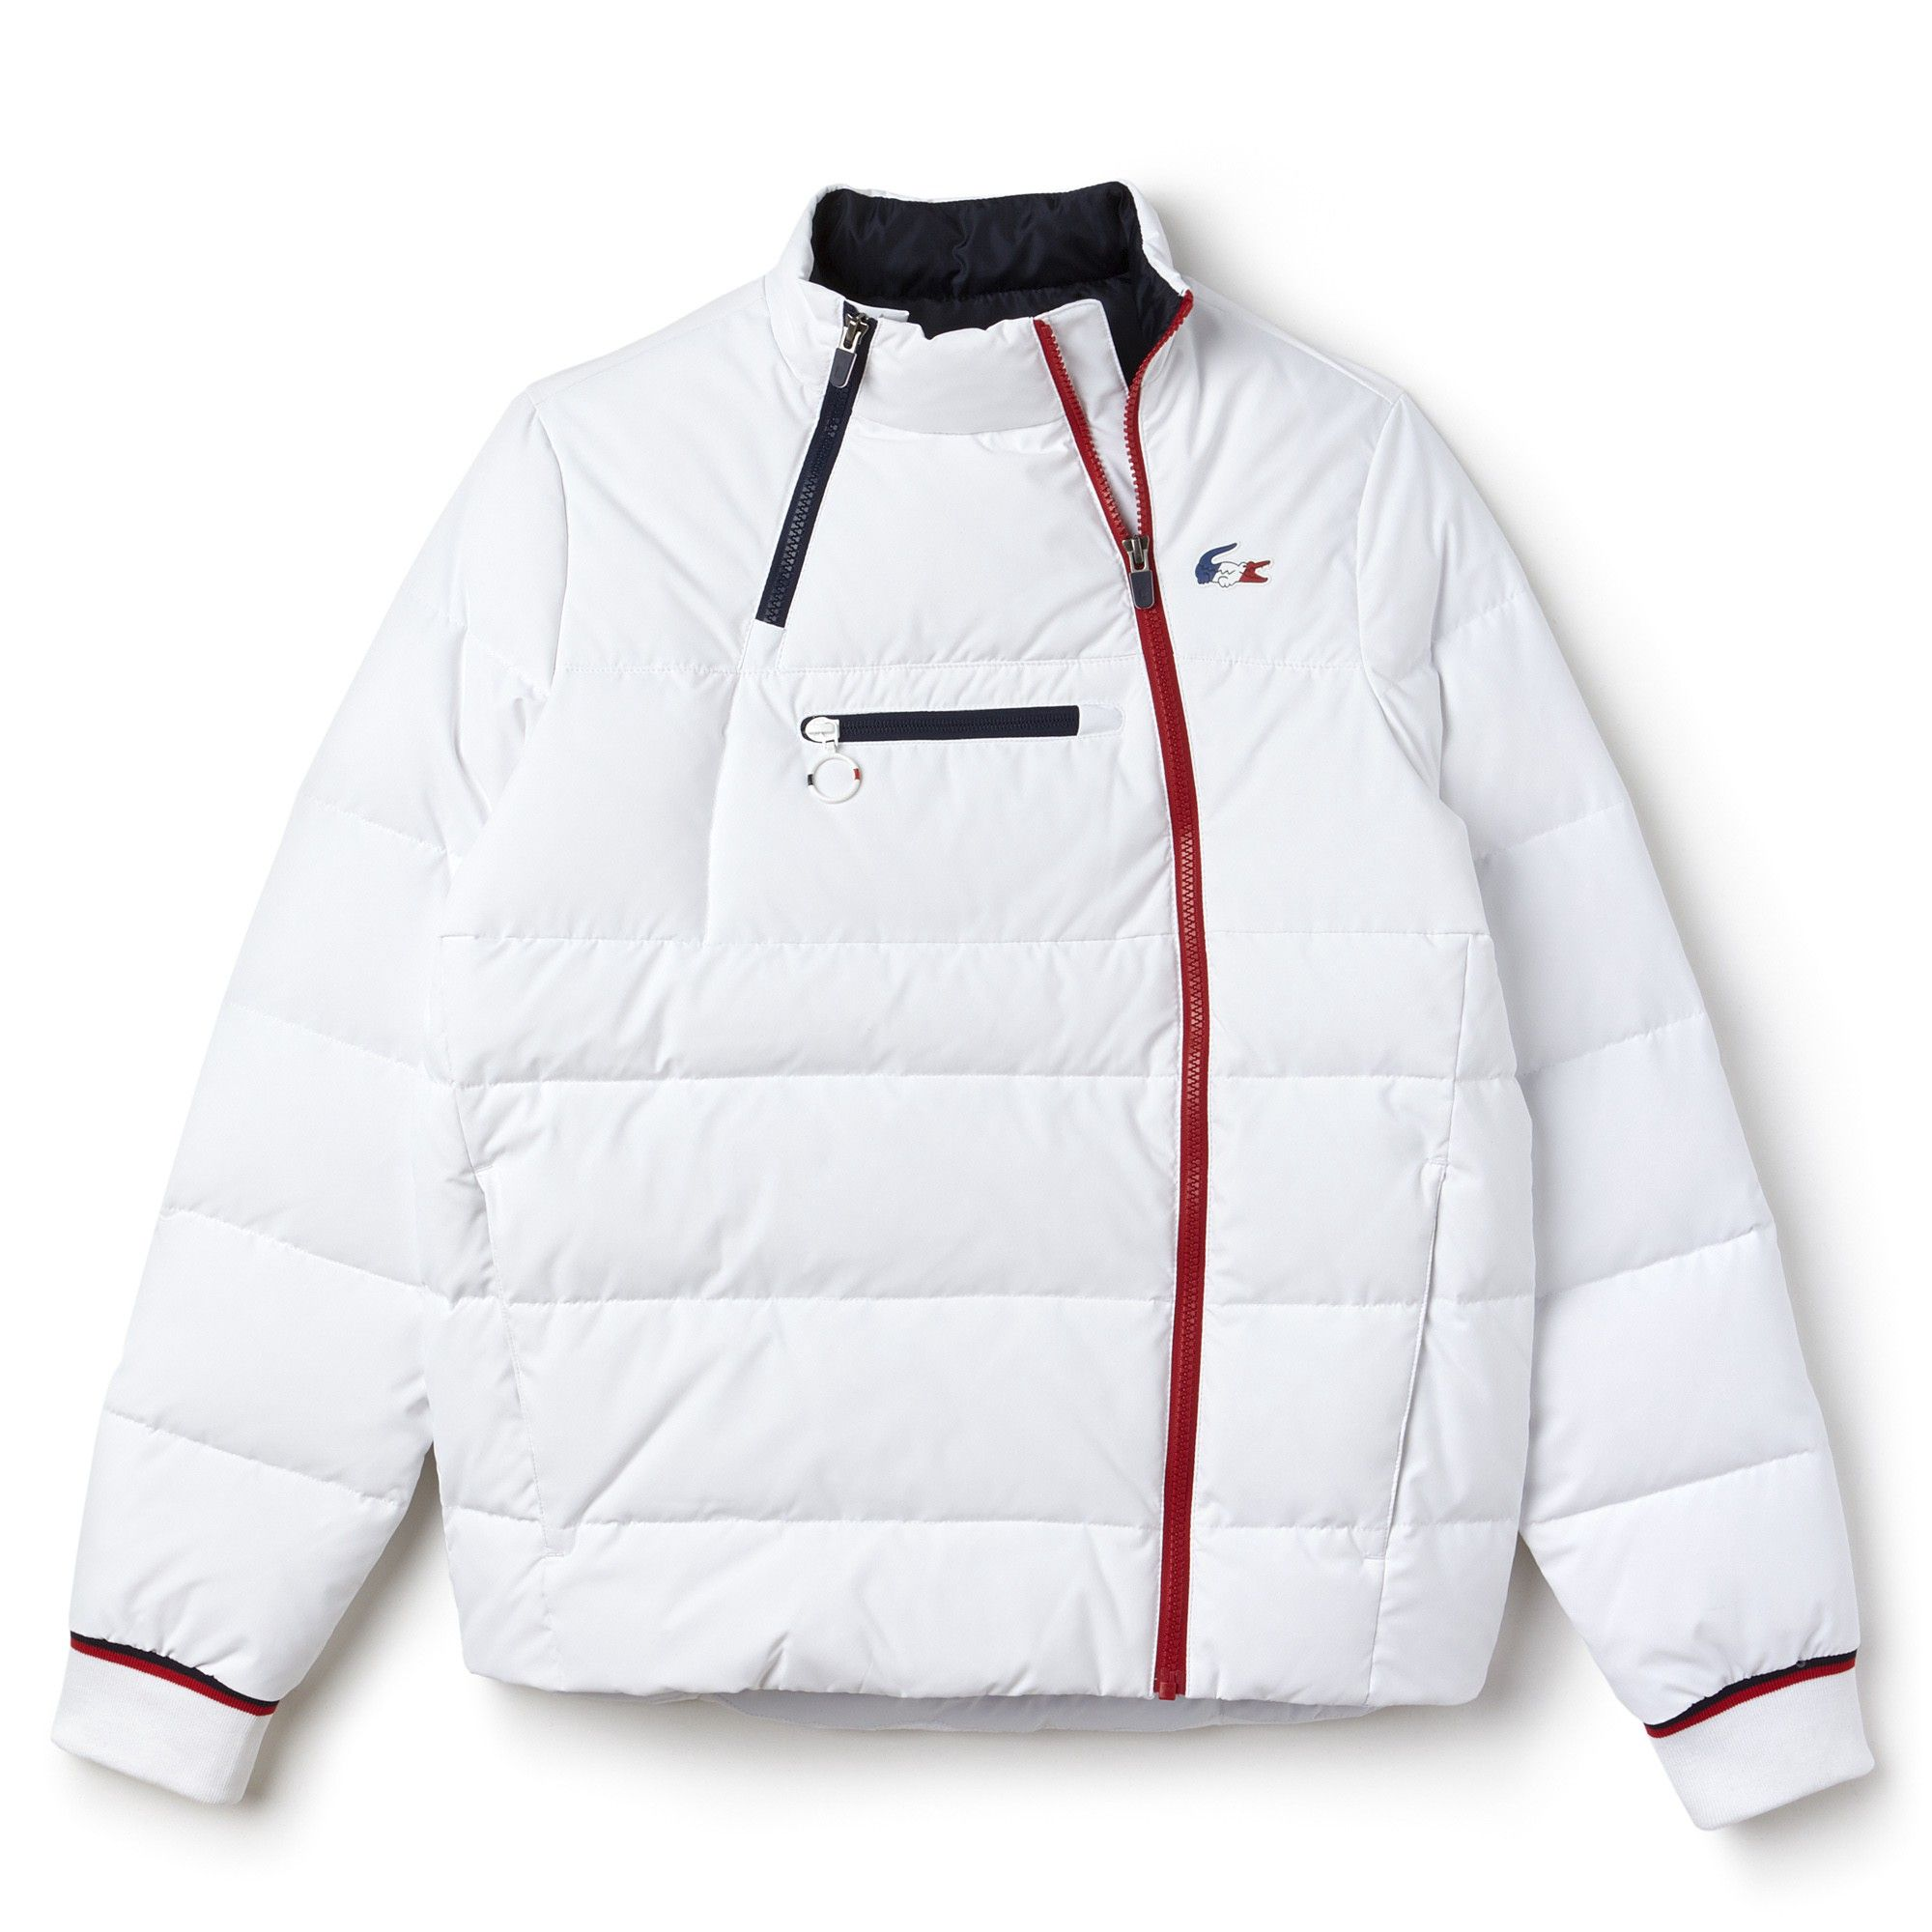 d6d3bc566896 Lacoste Women s French Sporting Spirit Edition Elasticized Panel Quilted  Jacket - White Navy Blue-Red S